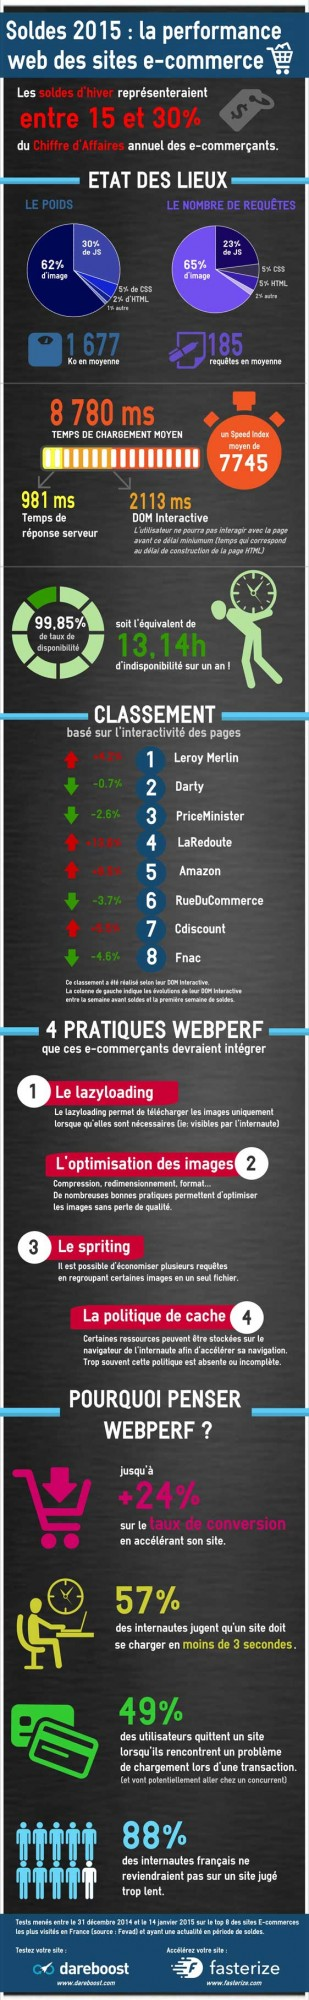 infographie-performance-ecommerce-soldes